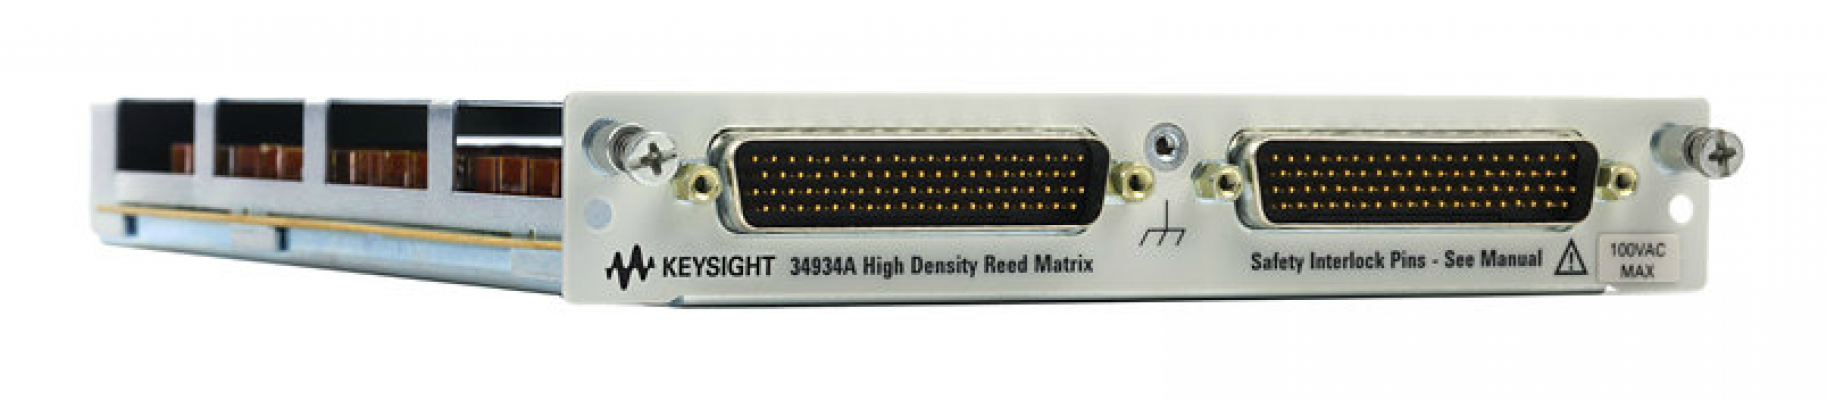 Quad 4x32 Reed Matrix for 34980A, 34934A